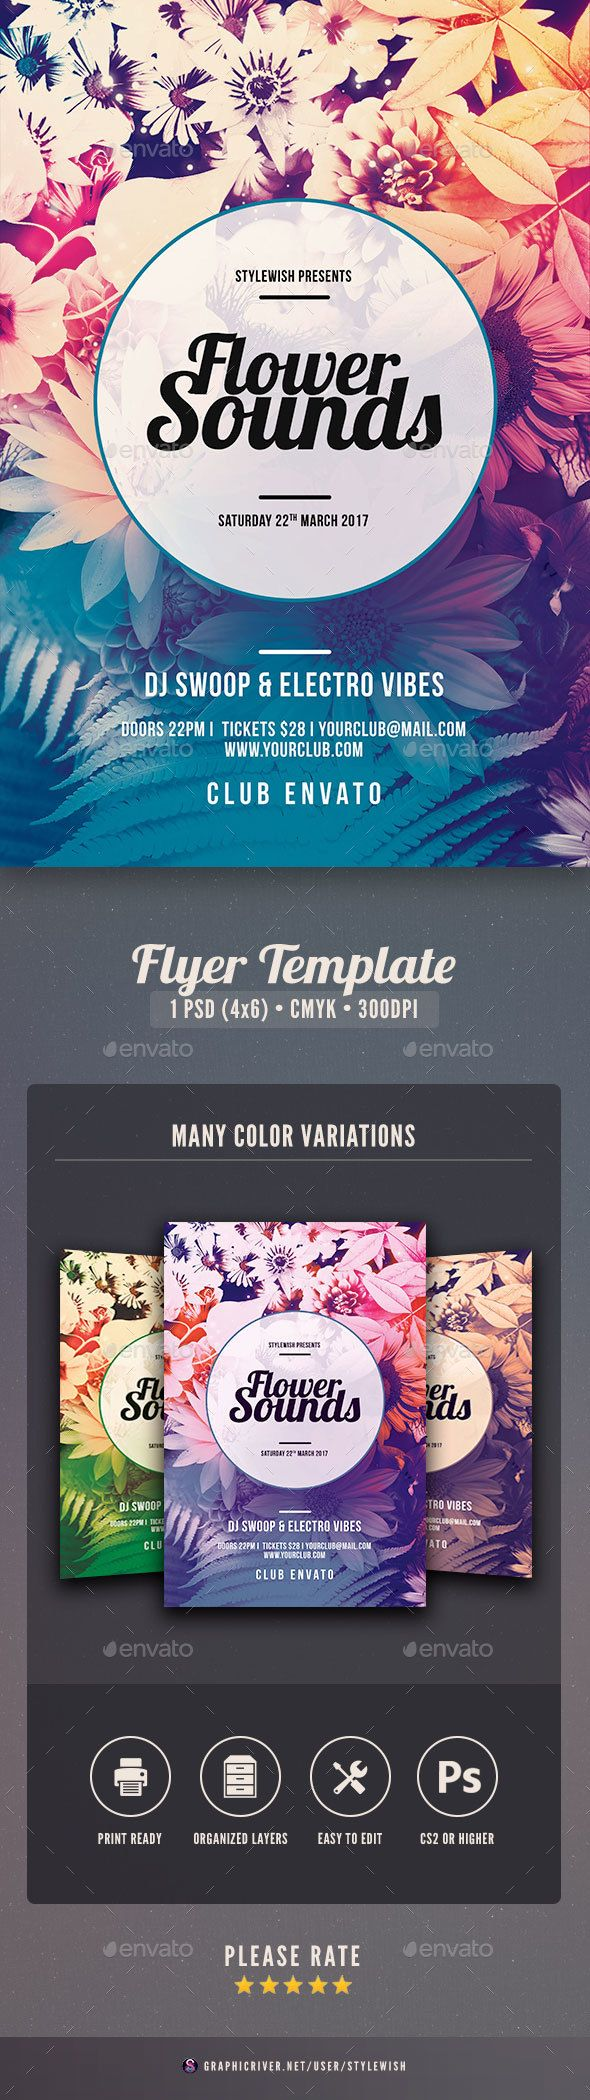 Flower Sounds Flyer Template PSD